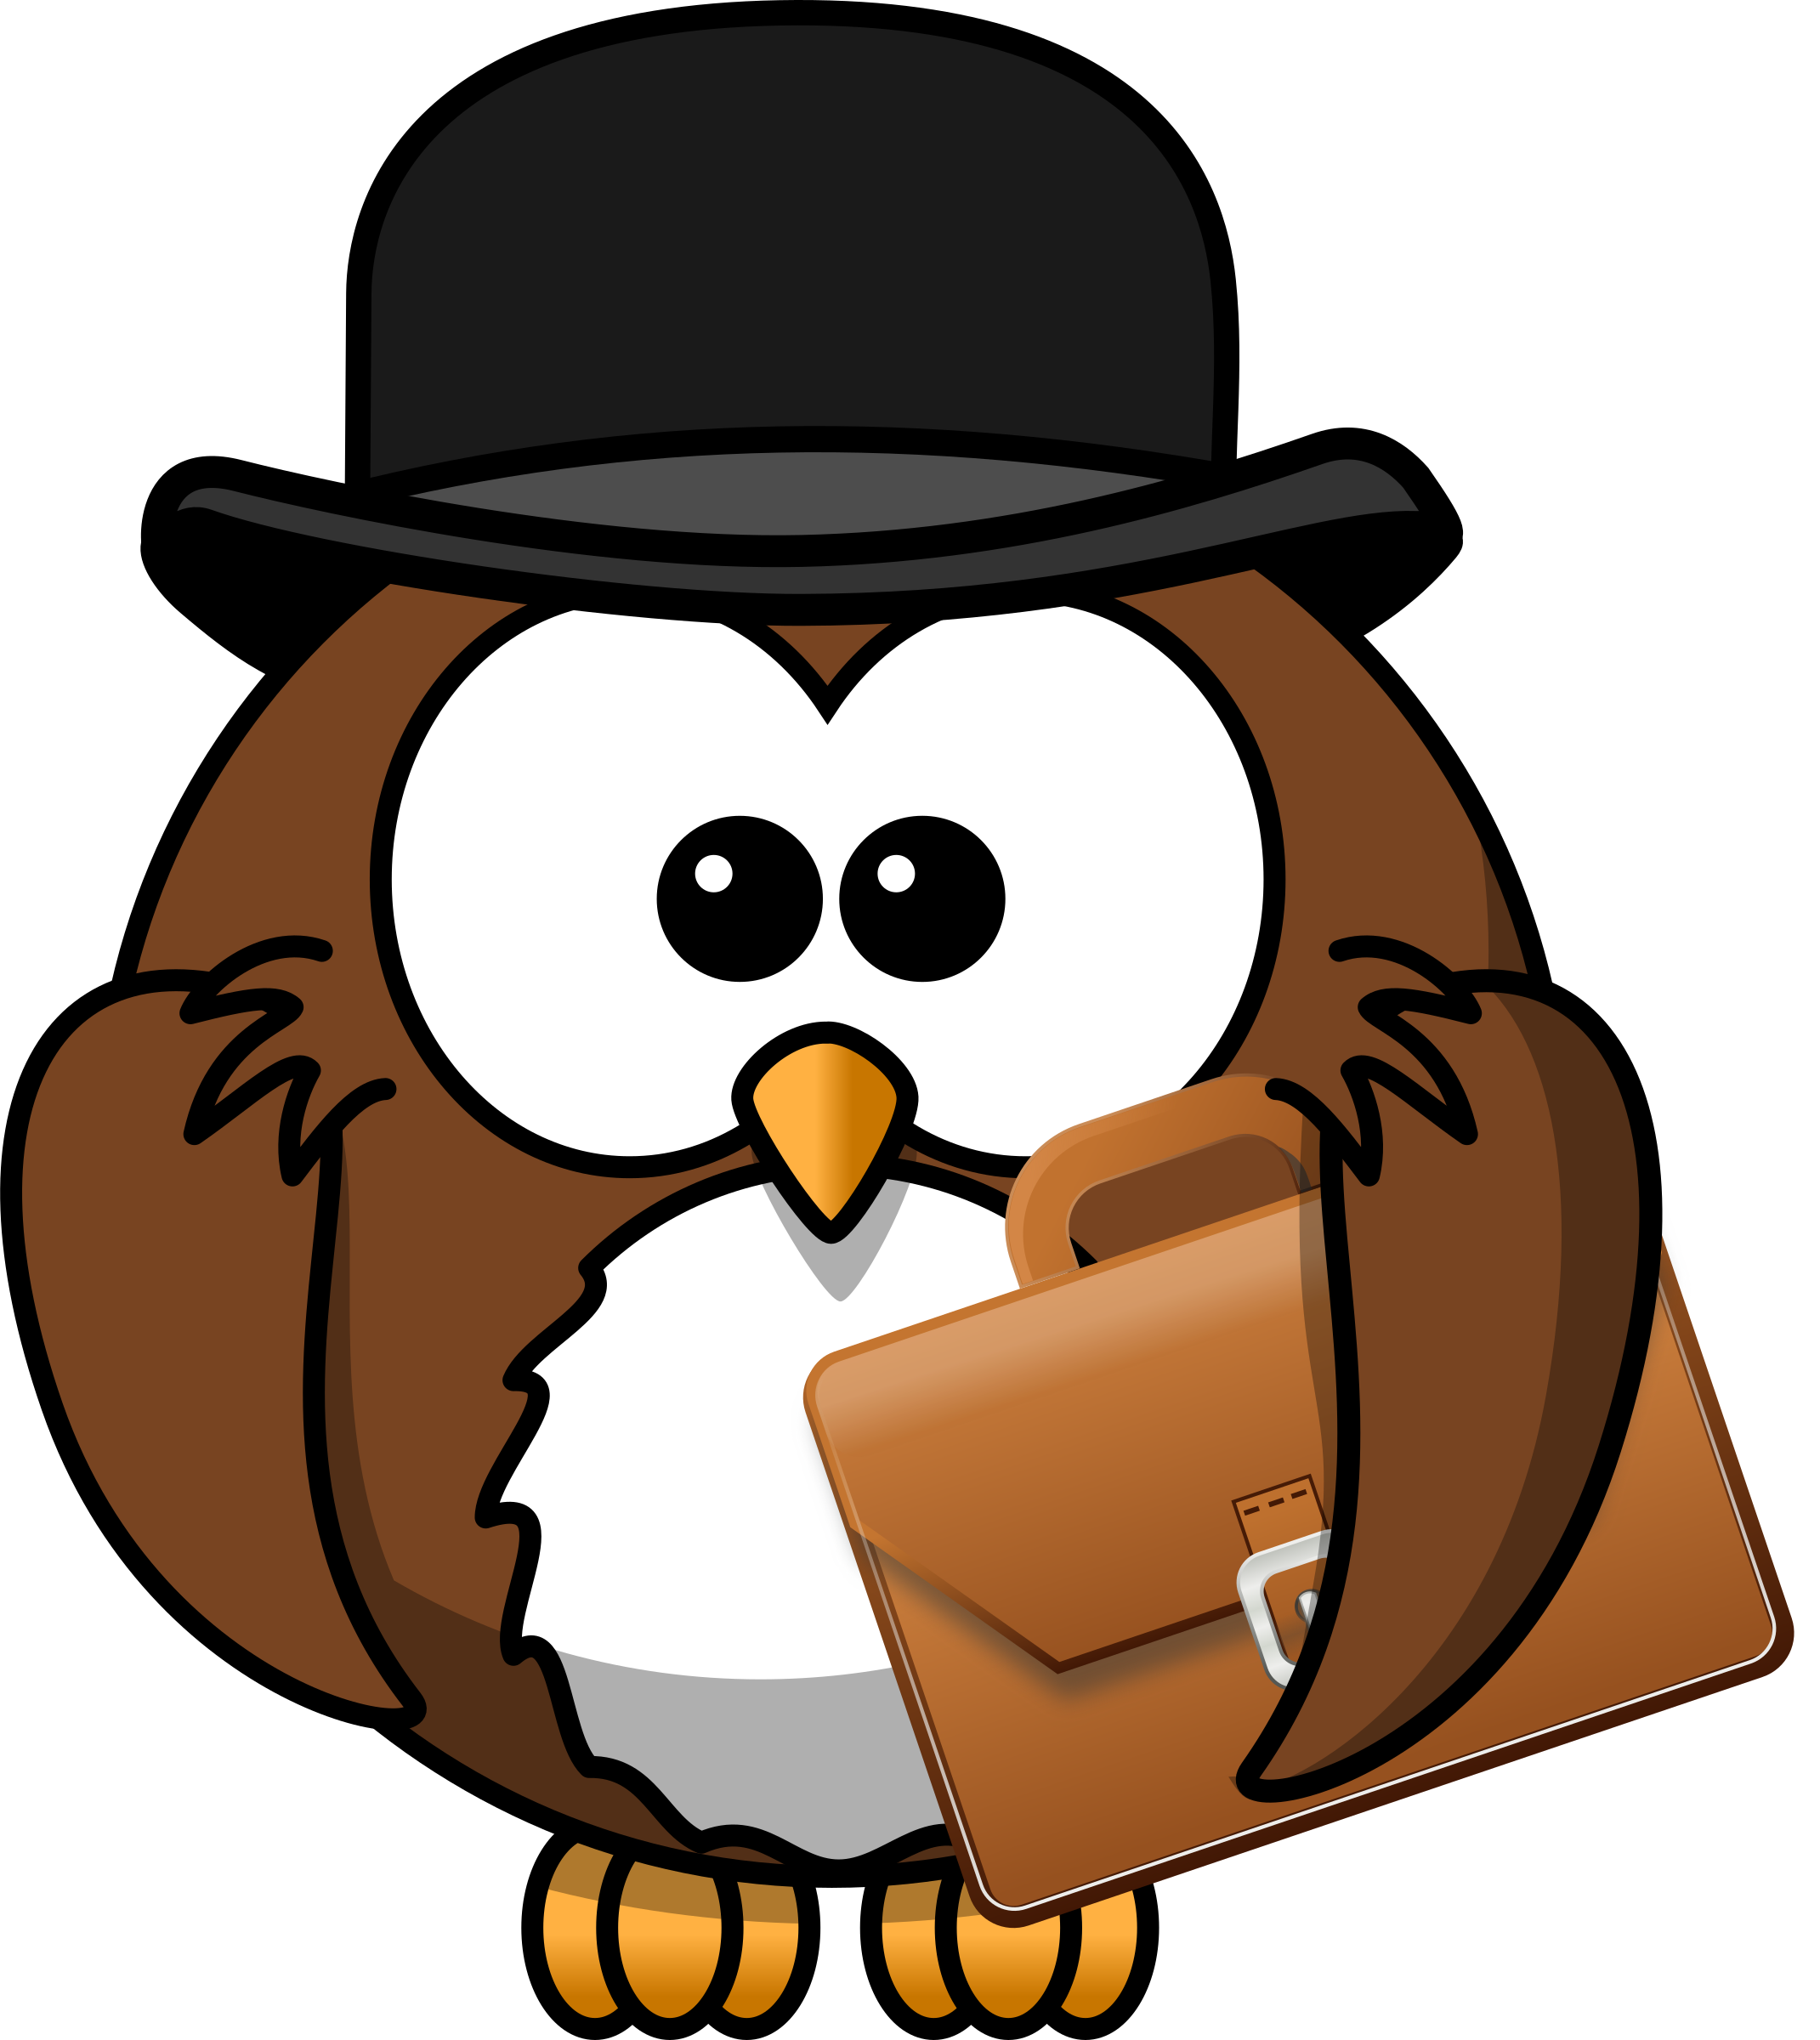 Sailor clipart owl. With hat and briefcase